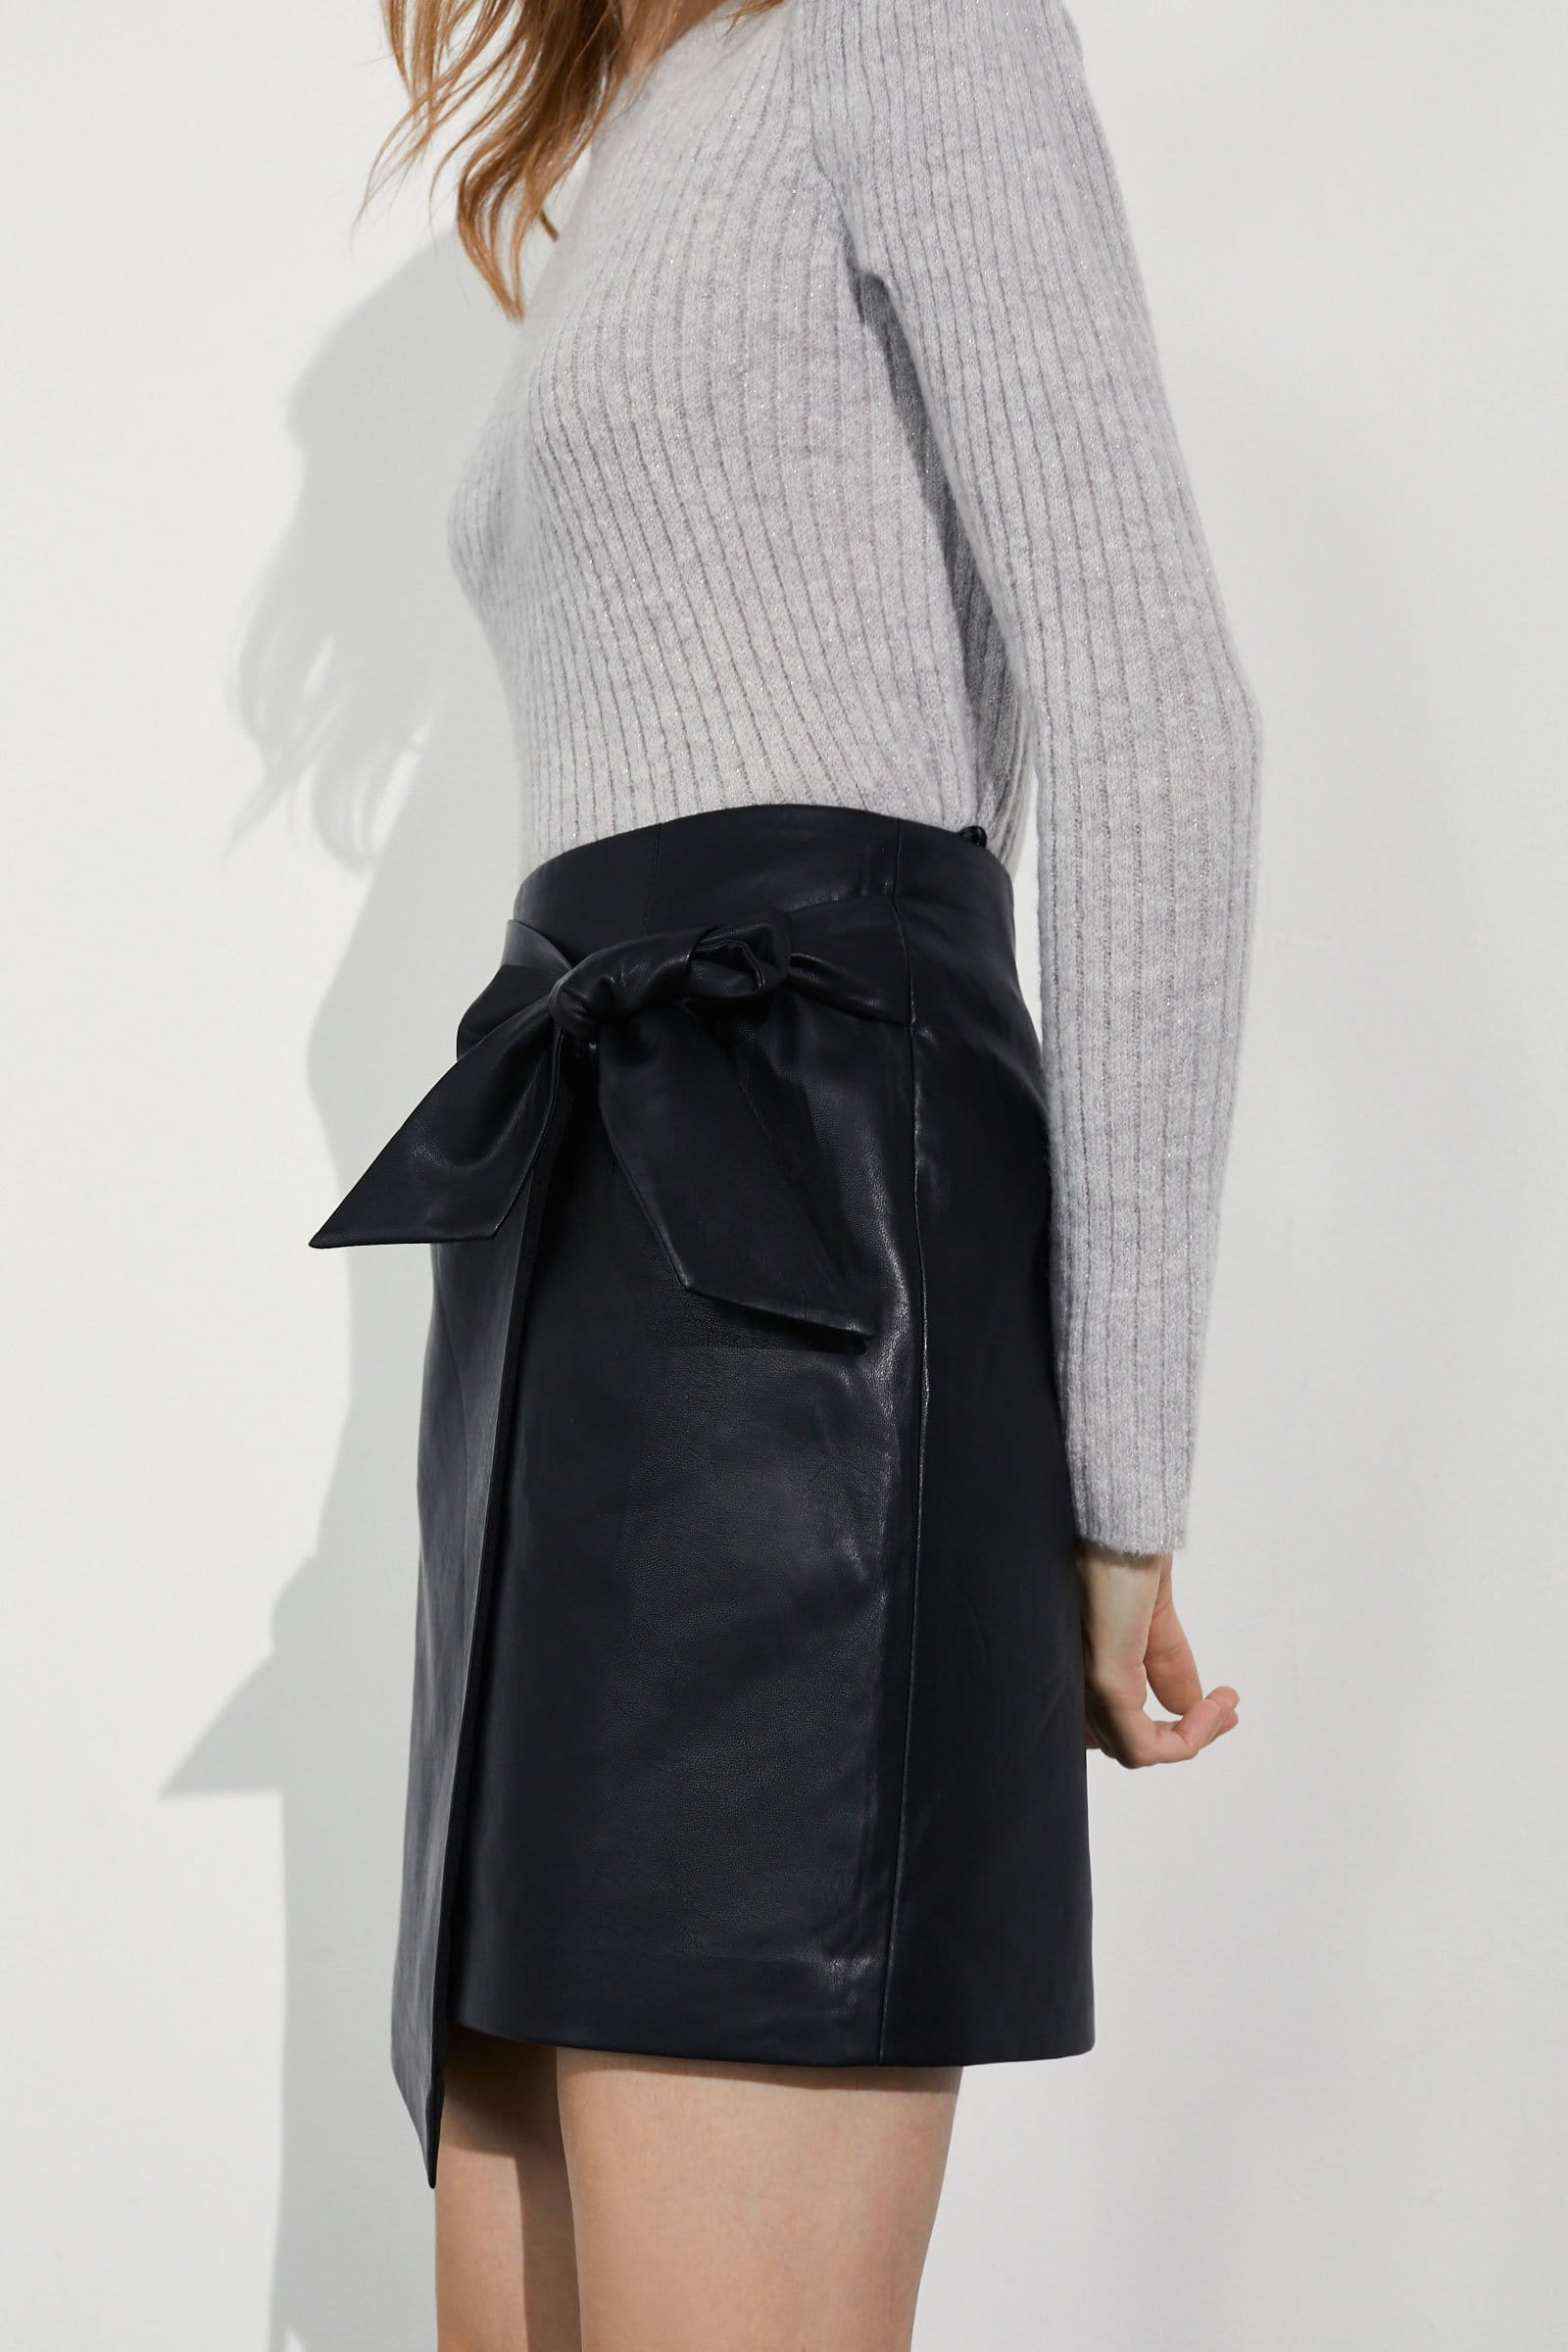 Evie Black Envelope Leather Skirt